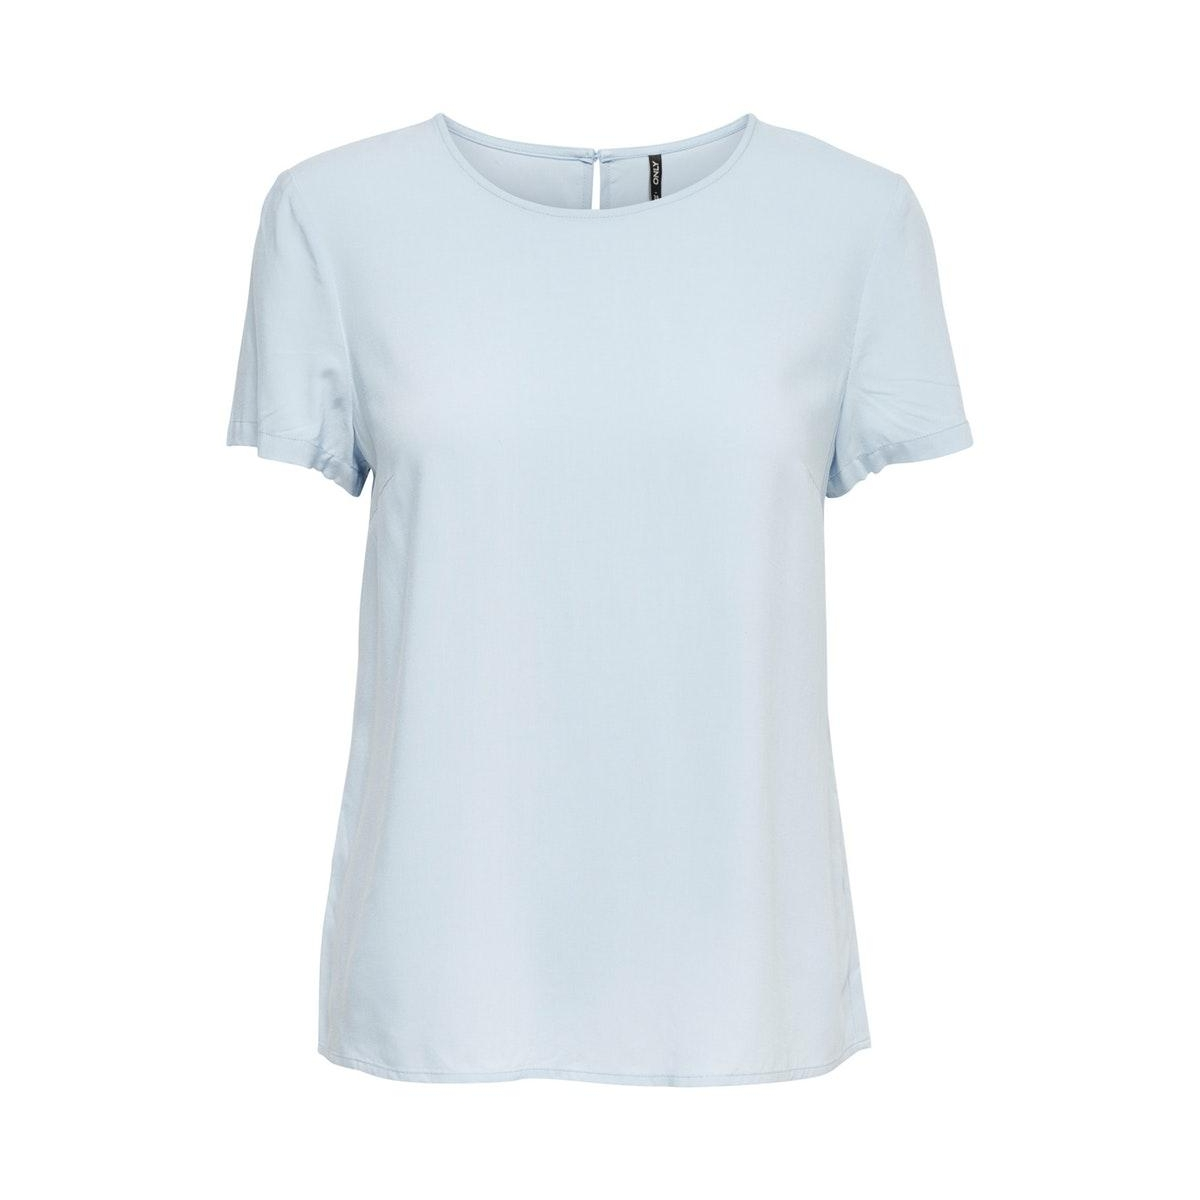 onlfirst one life ss solid top noos 15197495 only t-shirt cashmere blue